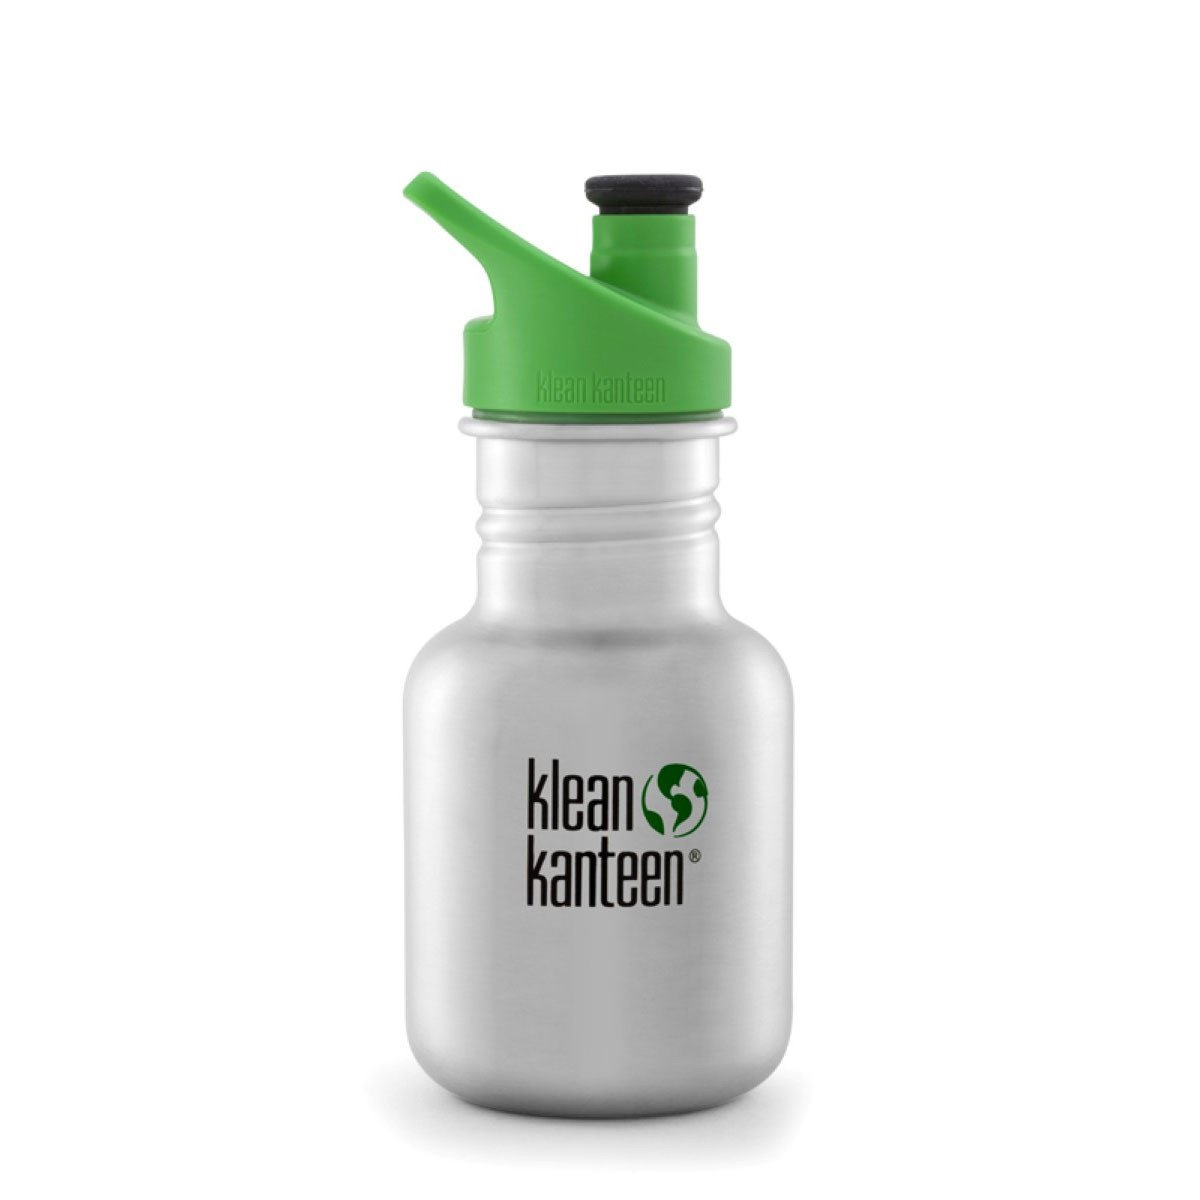 Klean Kanteen Kid Kanteen 355ml 12oz Stainless Steel Bottle Klean Kanteen Sippy Cups Sport / Brushed Stainless at Little Earth Nest Eco Shop